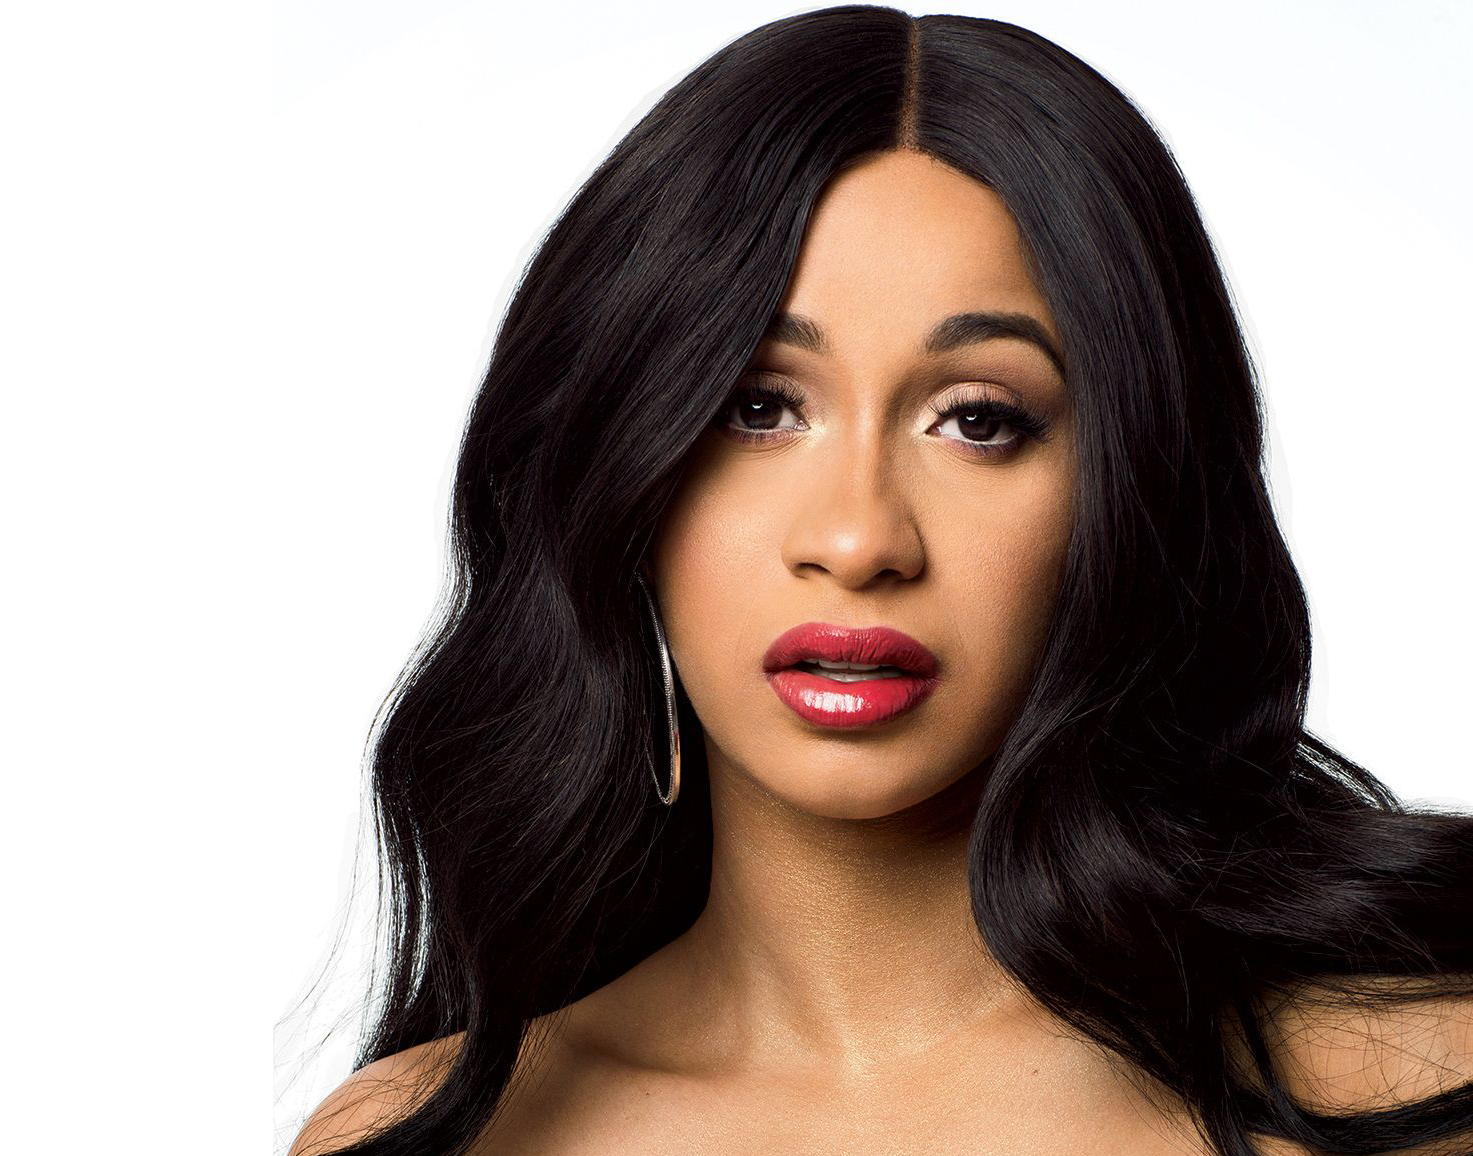 How To Get Live Wallpapers On Iphone 5 The Year Of Cardi B Rolling Stone